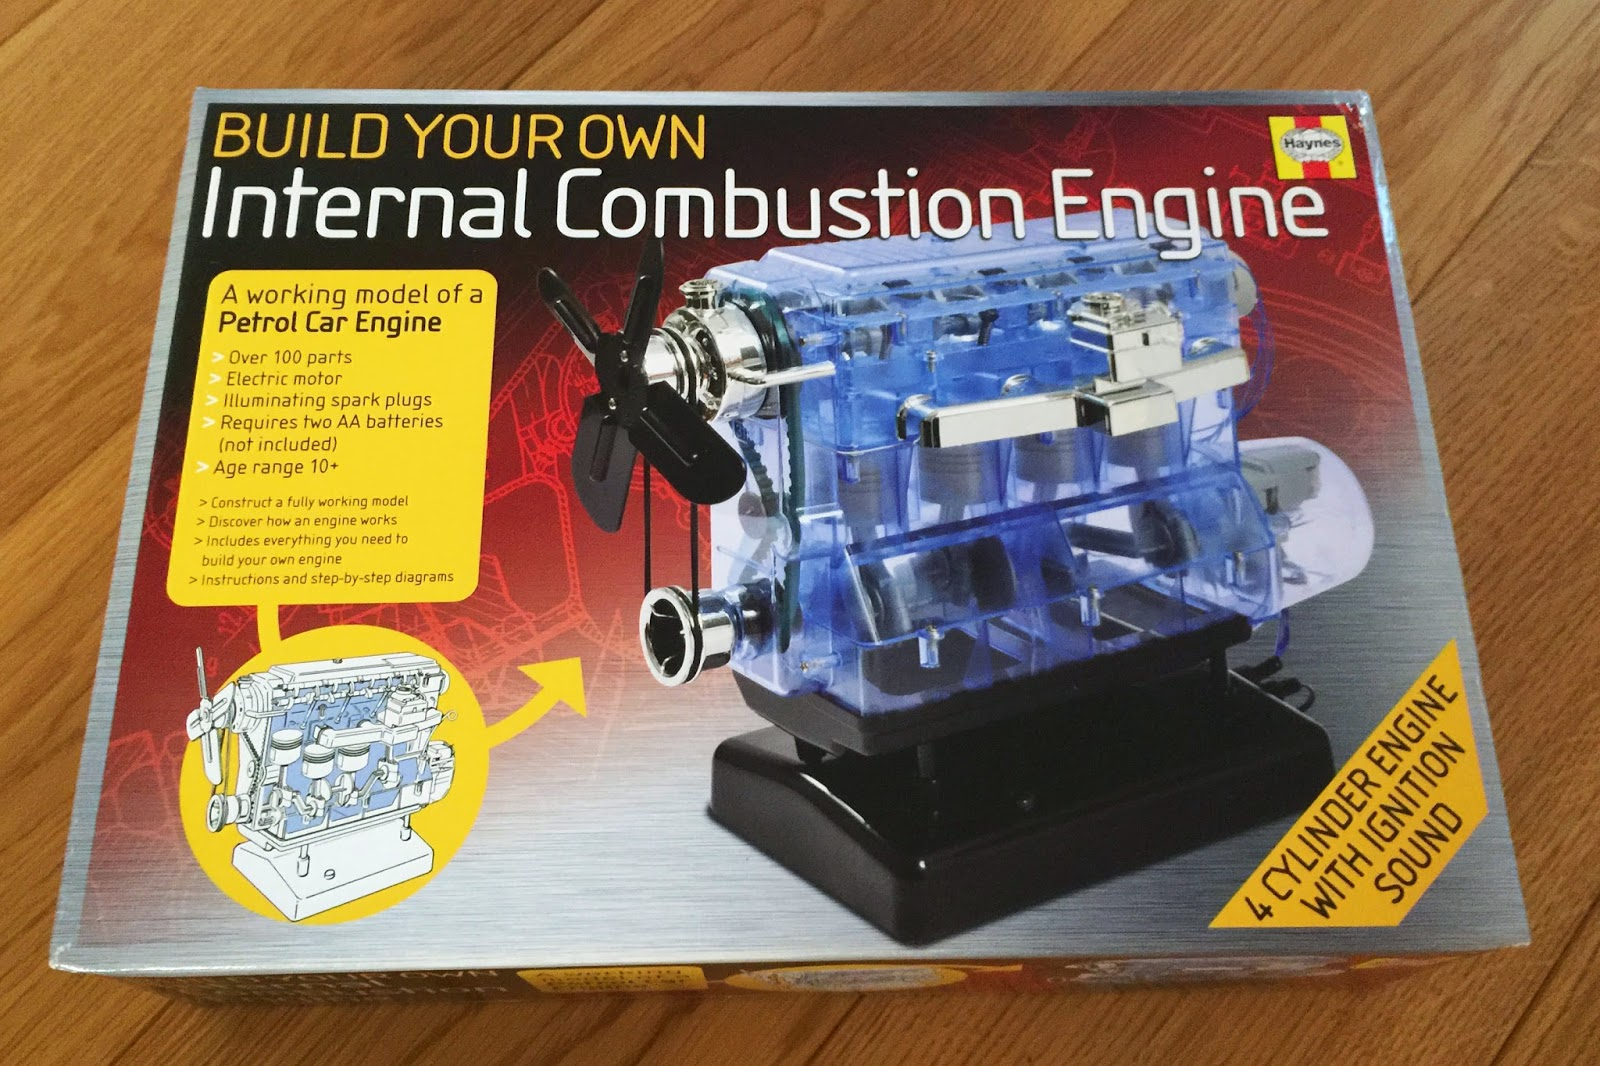 Build Your Own Internal Combustion Engine made by Haynes